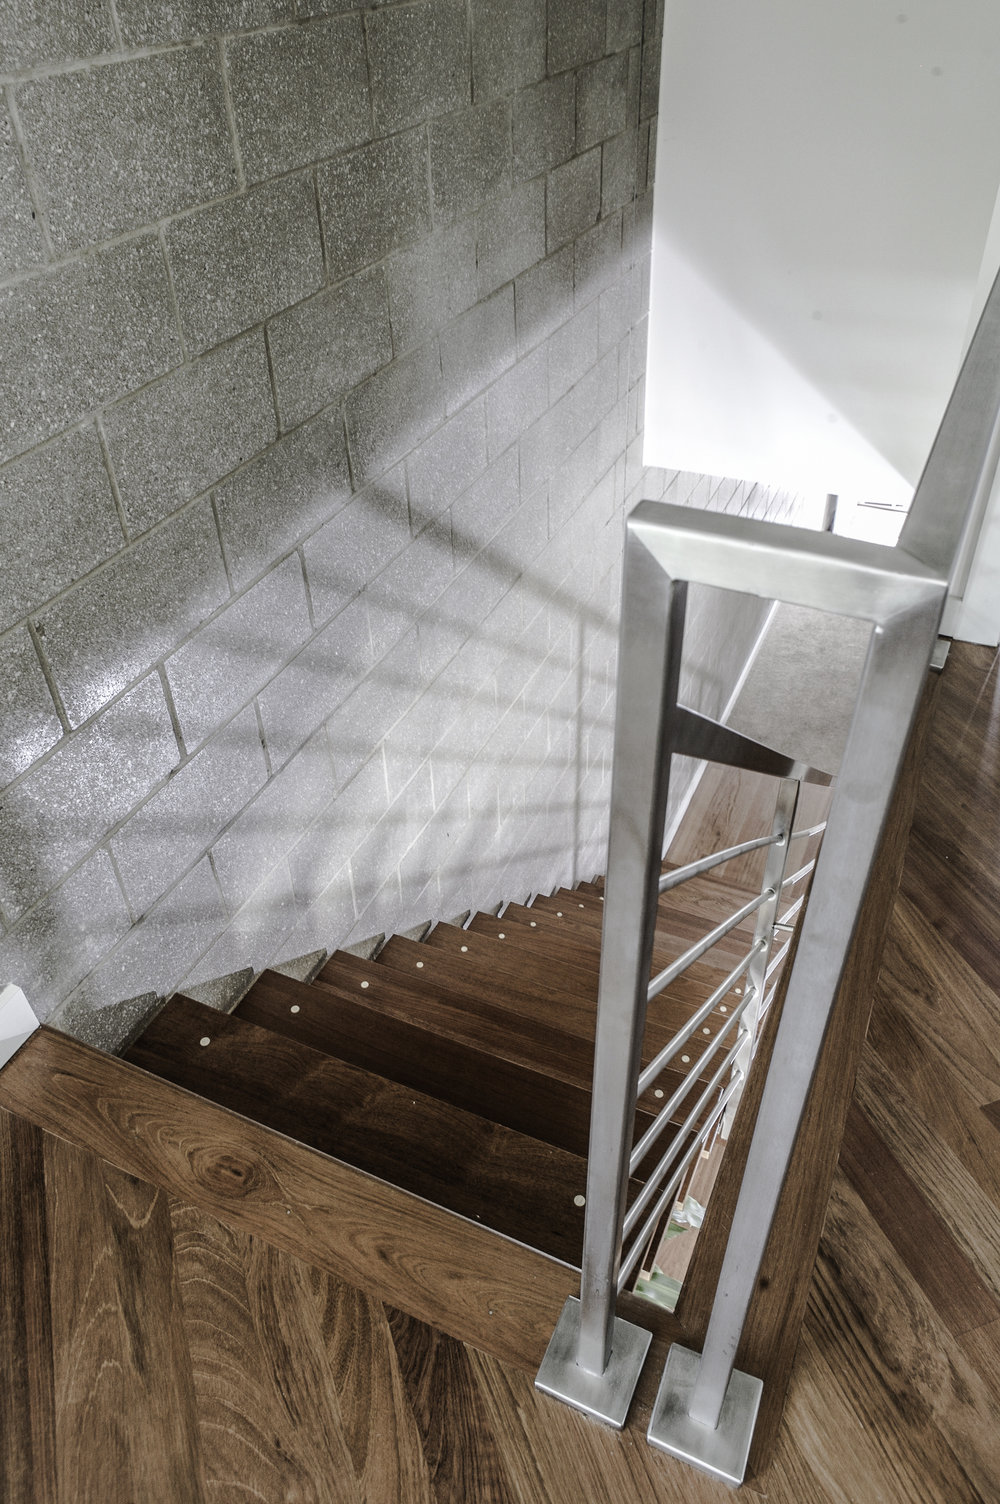 311 STREET STAIR - OOMBRA ARCHITECTS